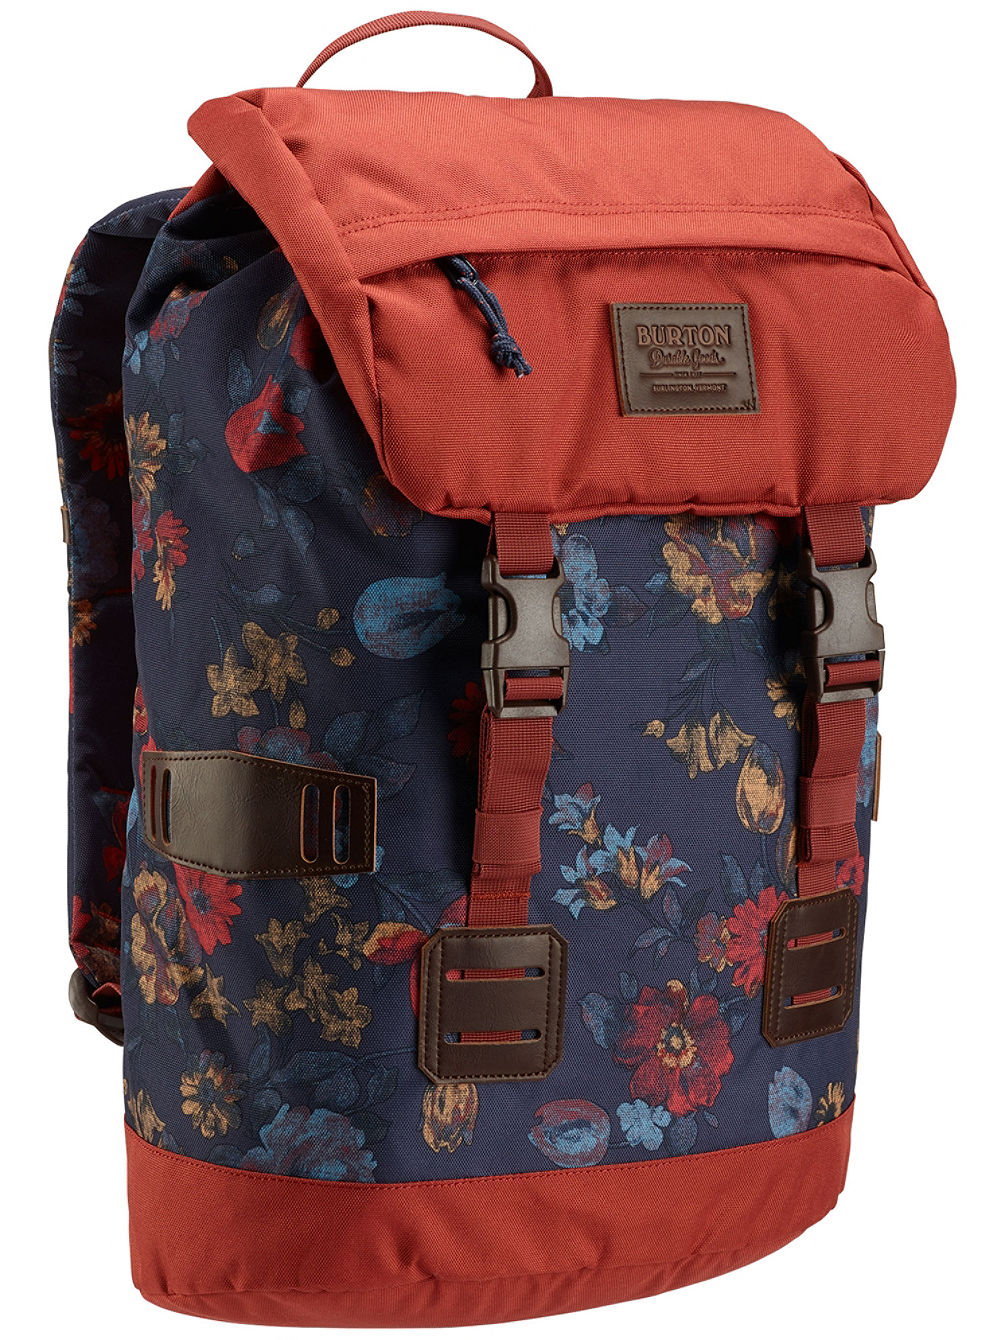 Tinder Backpack